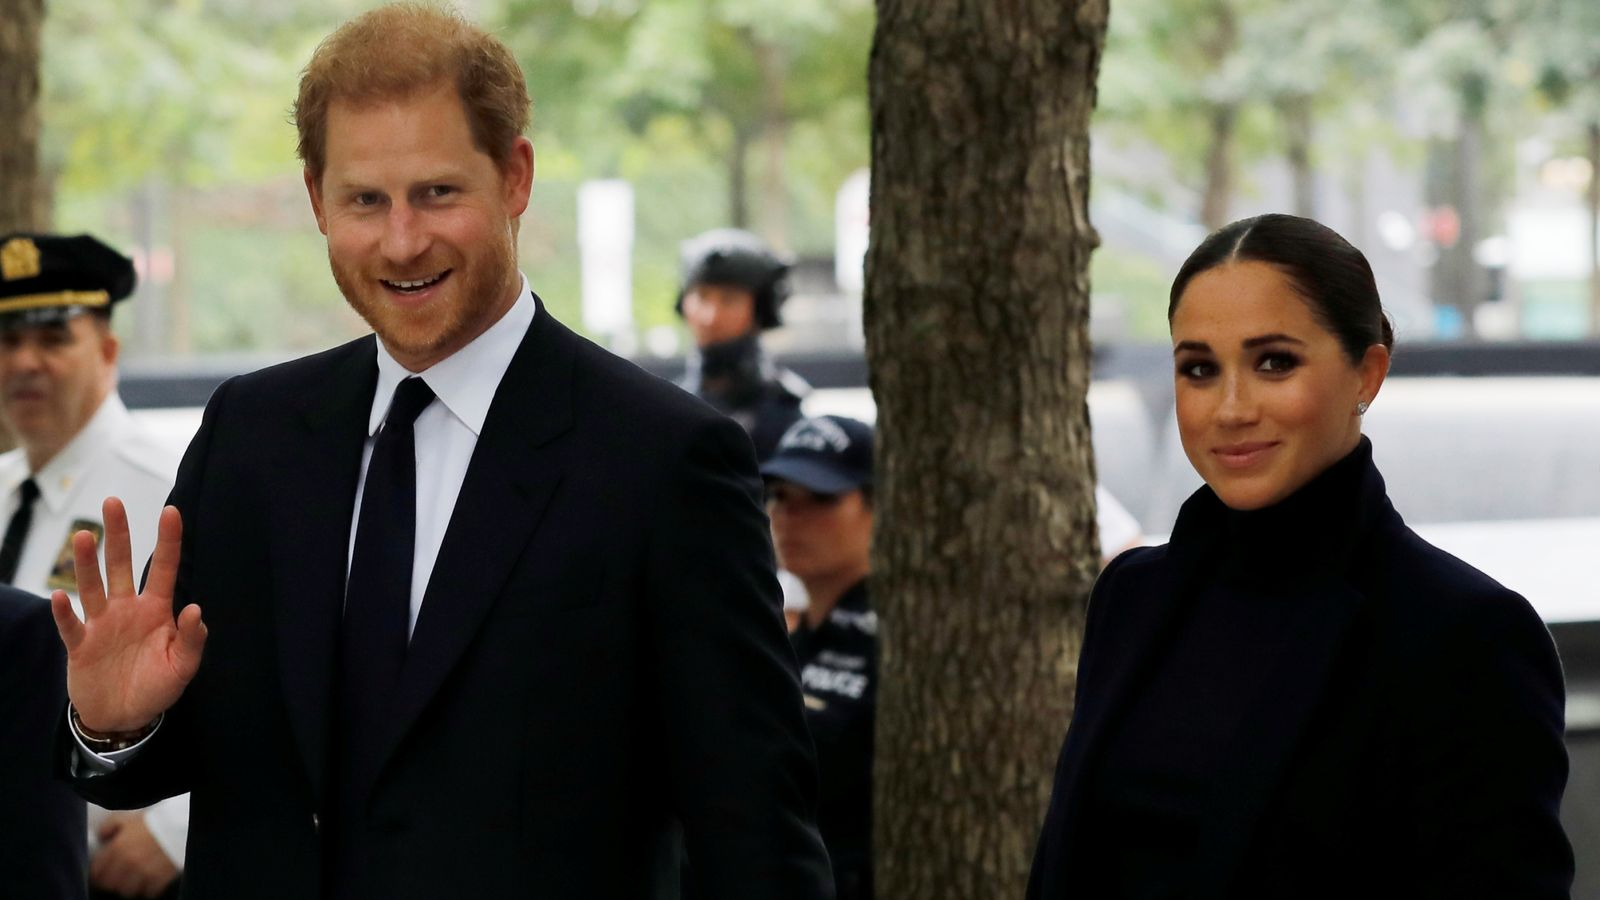 Duke and Duchess of Sussex visit 9/11 memorial in New York City in first major public trip since quitting as senior royals